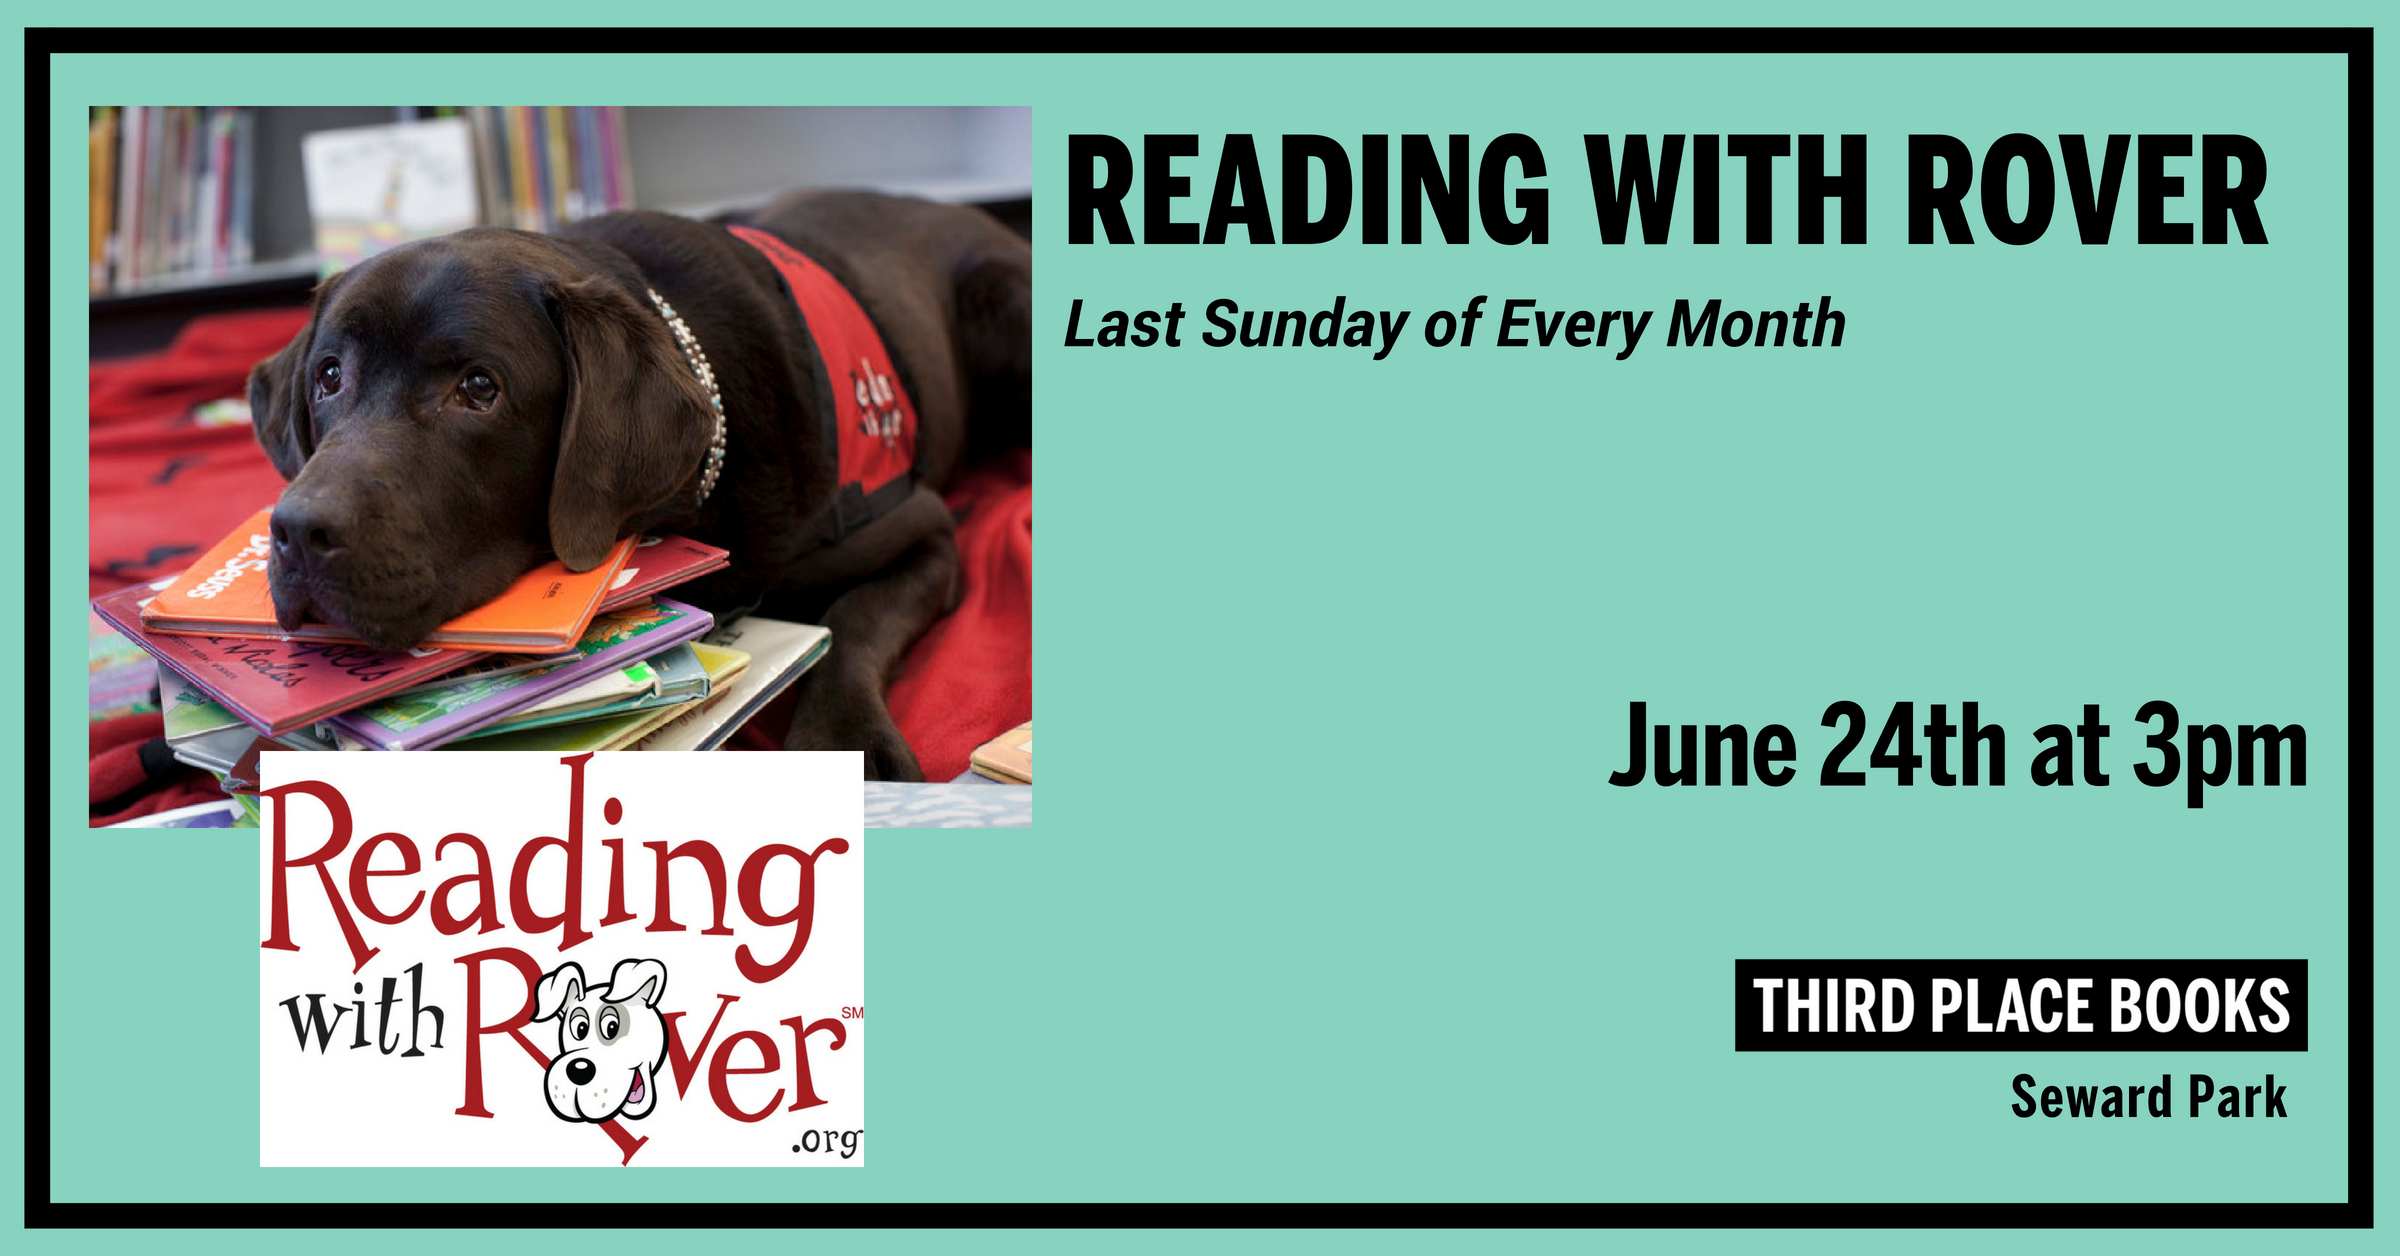 Reading With Rover! Sunday, June 24th at 3pm